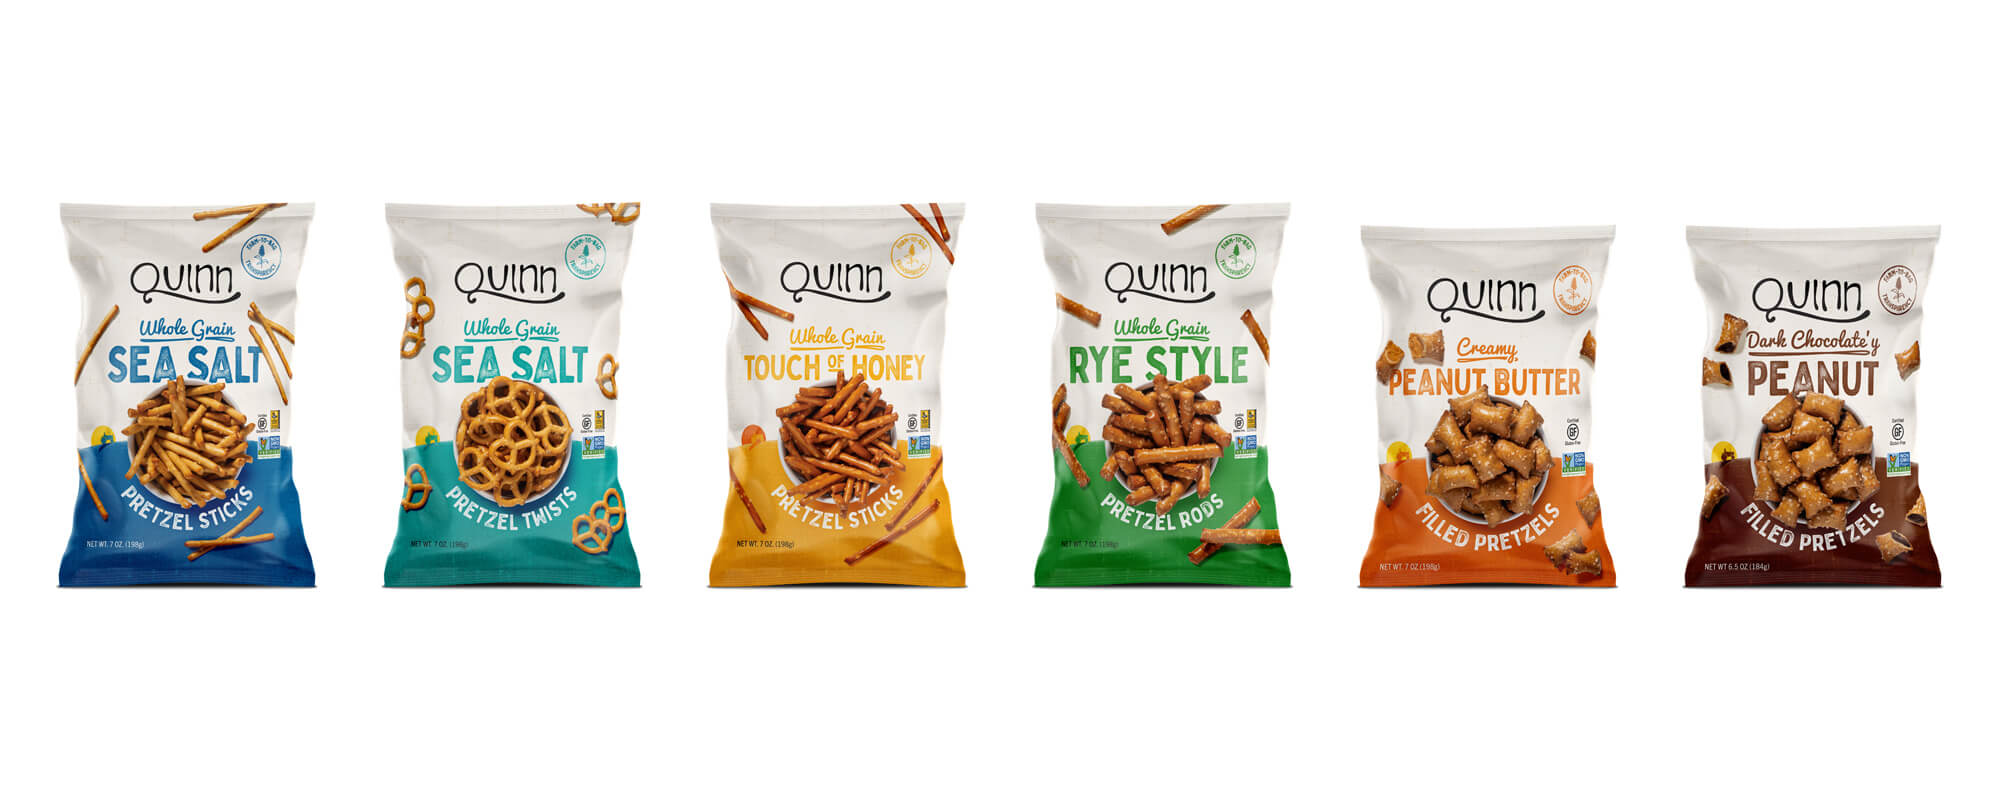 Quinn Pretzels Packaging